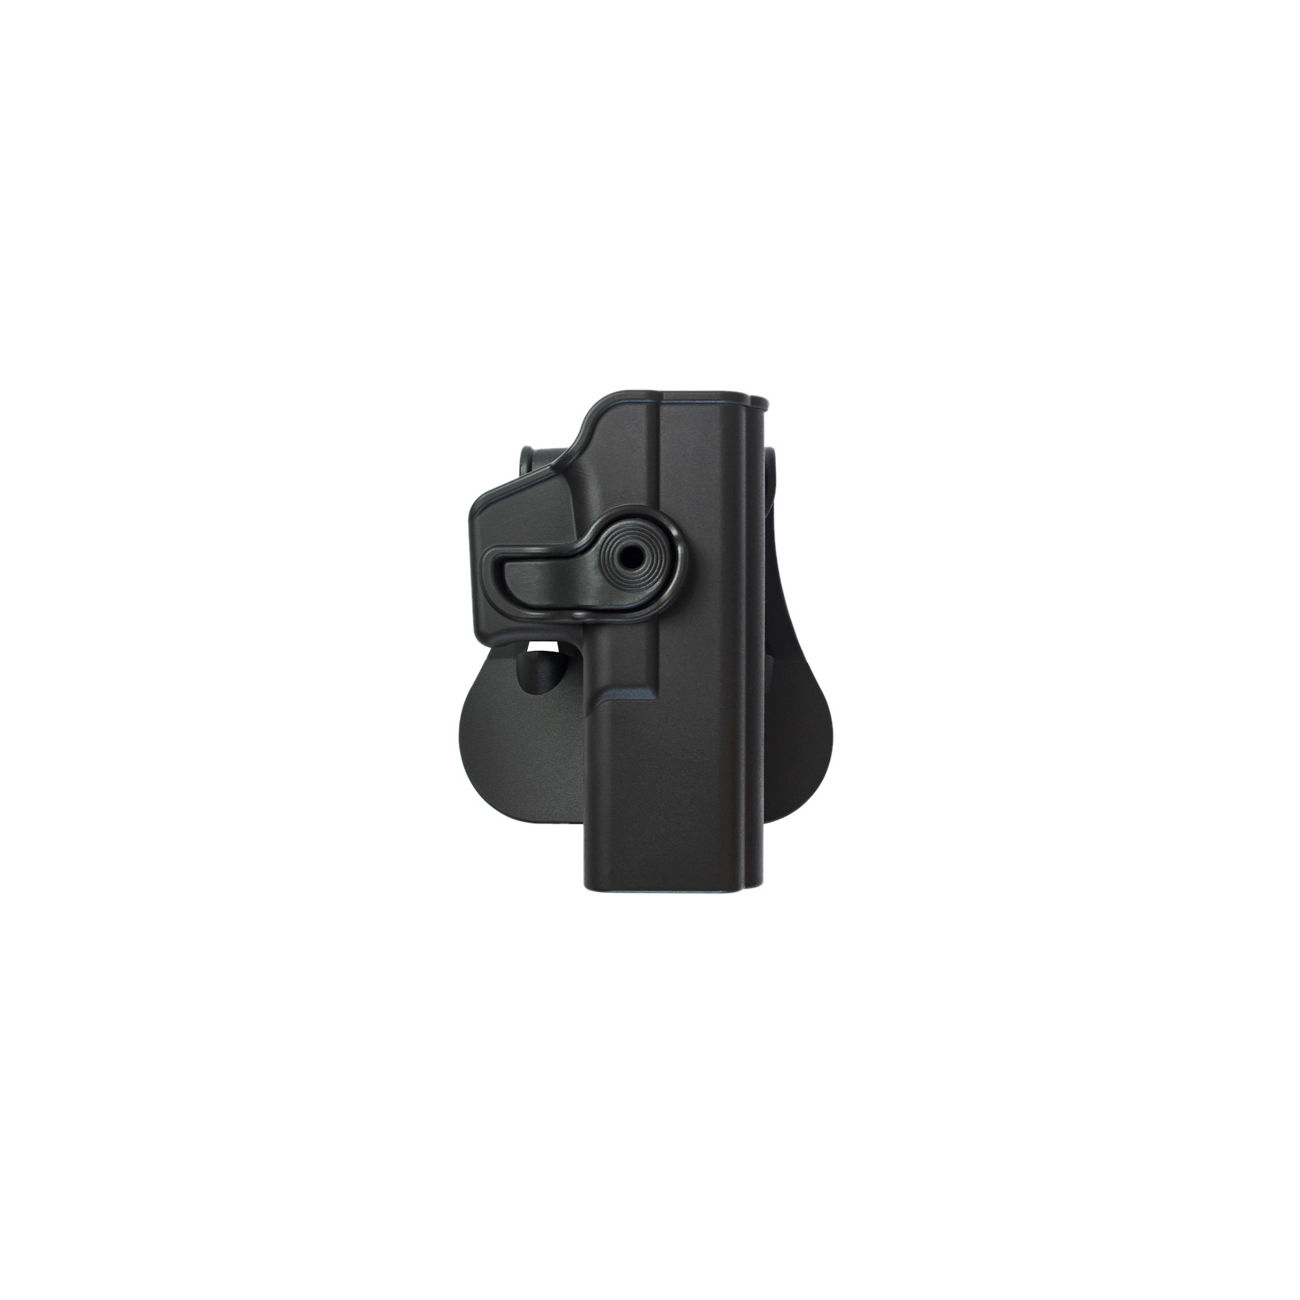 IMI Defense Level 2 Holster Kunststoff Paddle für G 17/22/28/31/34 schwarz 0